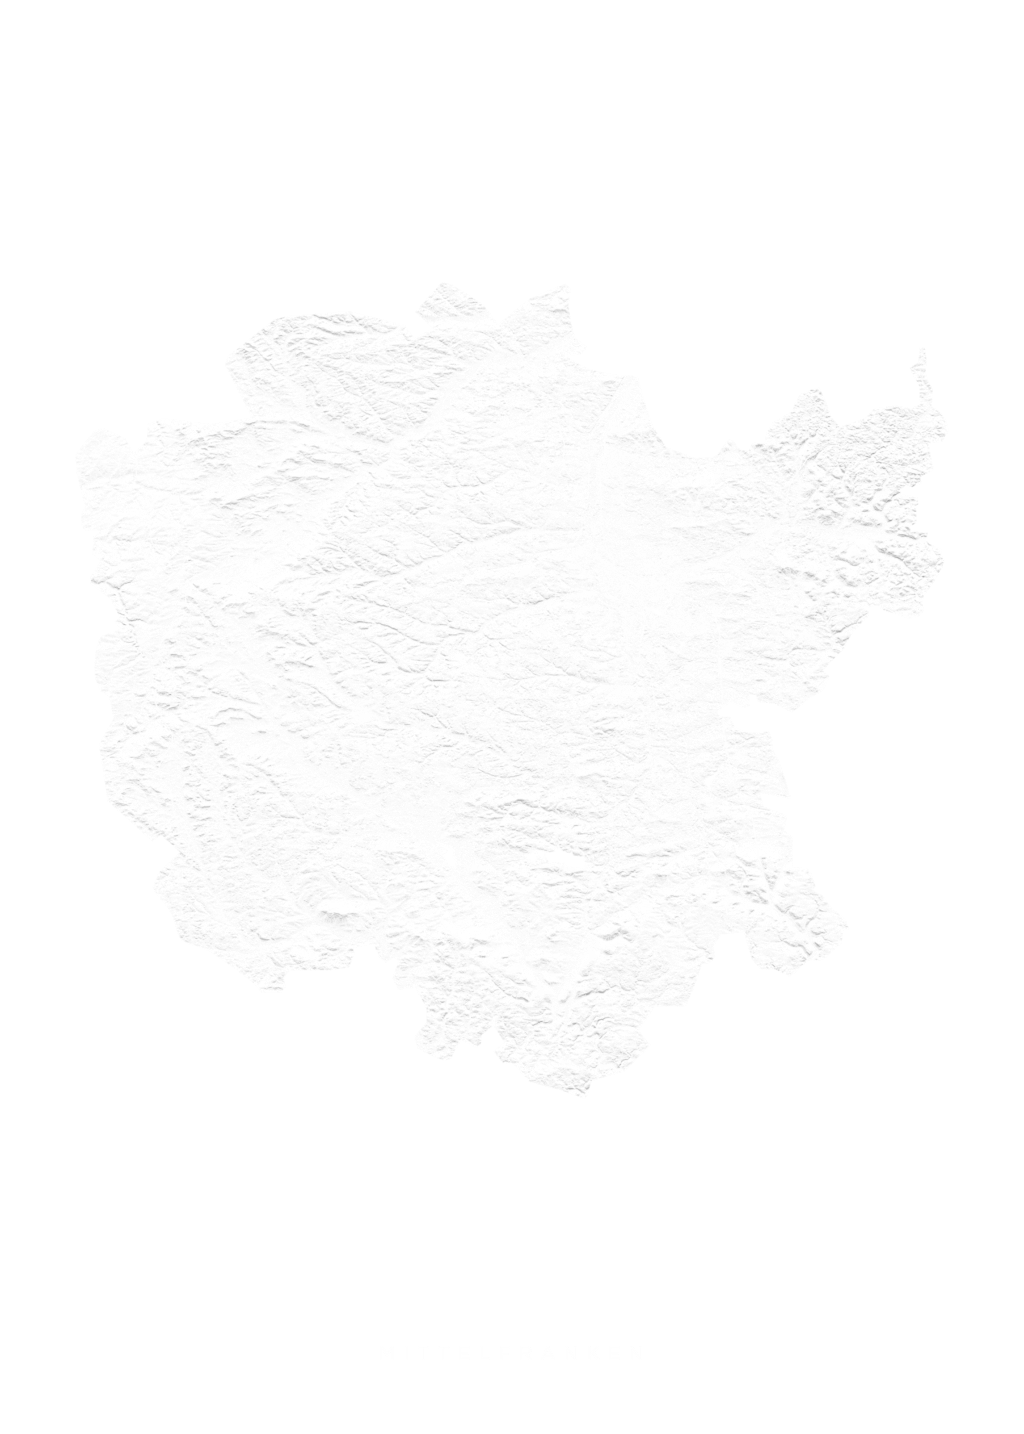 Mittelfranken wall map